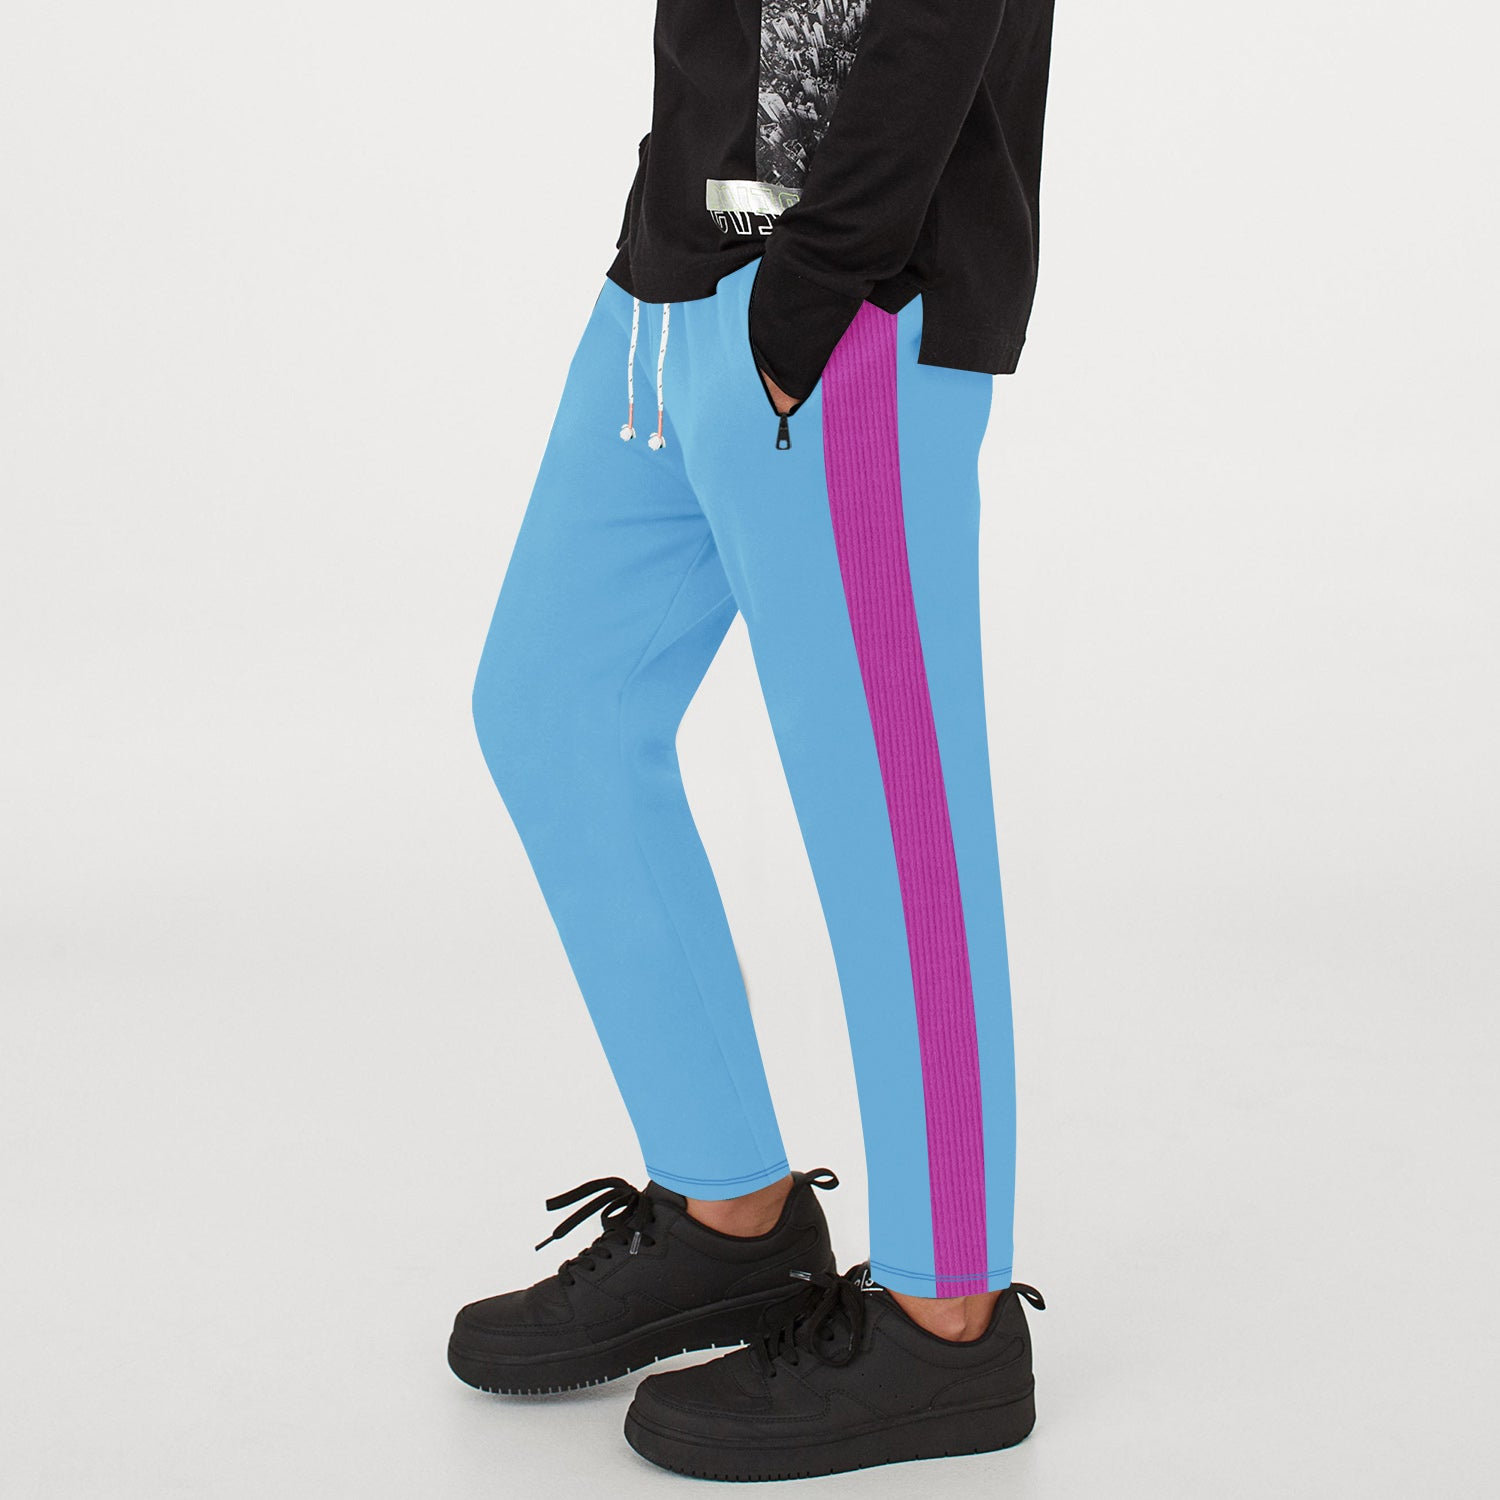 Tommy Hilfiger Both Season Trouser For Kids-Cyan with Magenta Stripe-BE12775